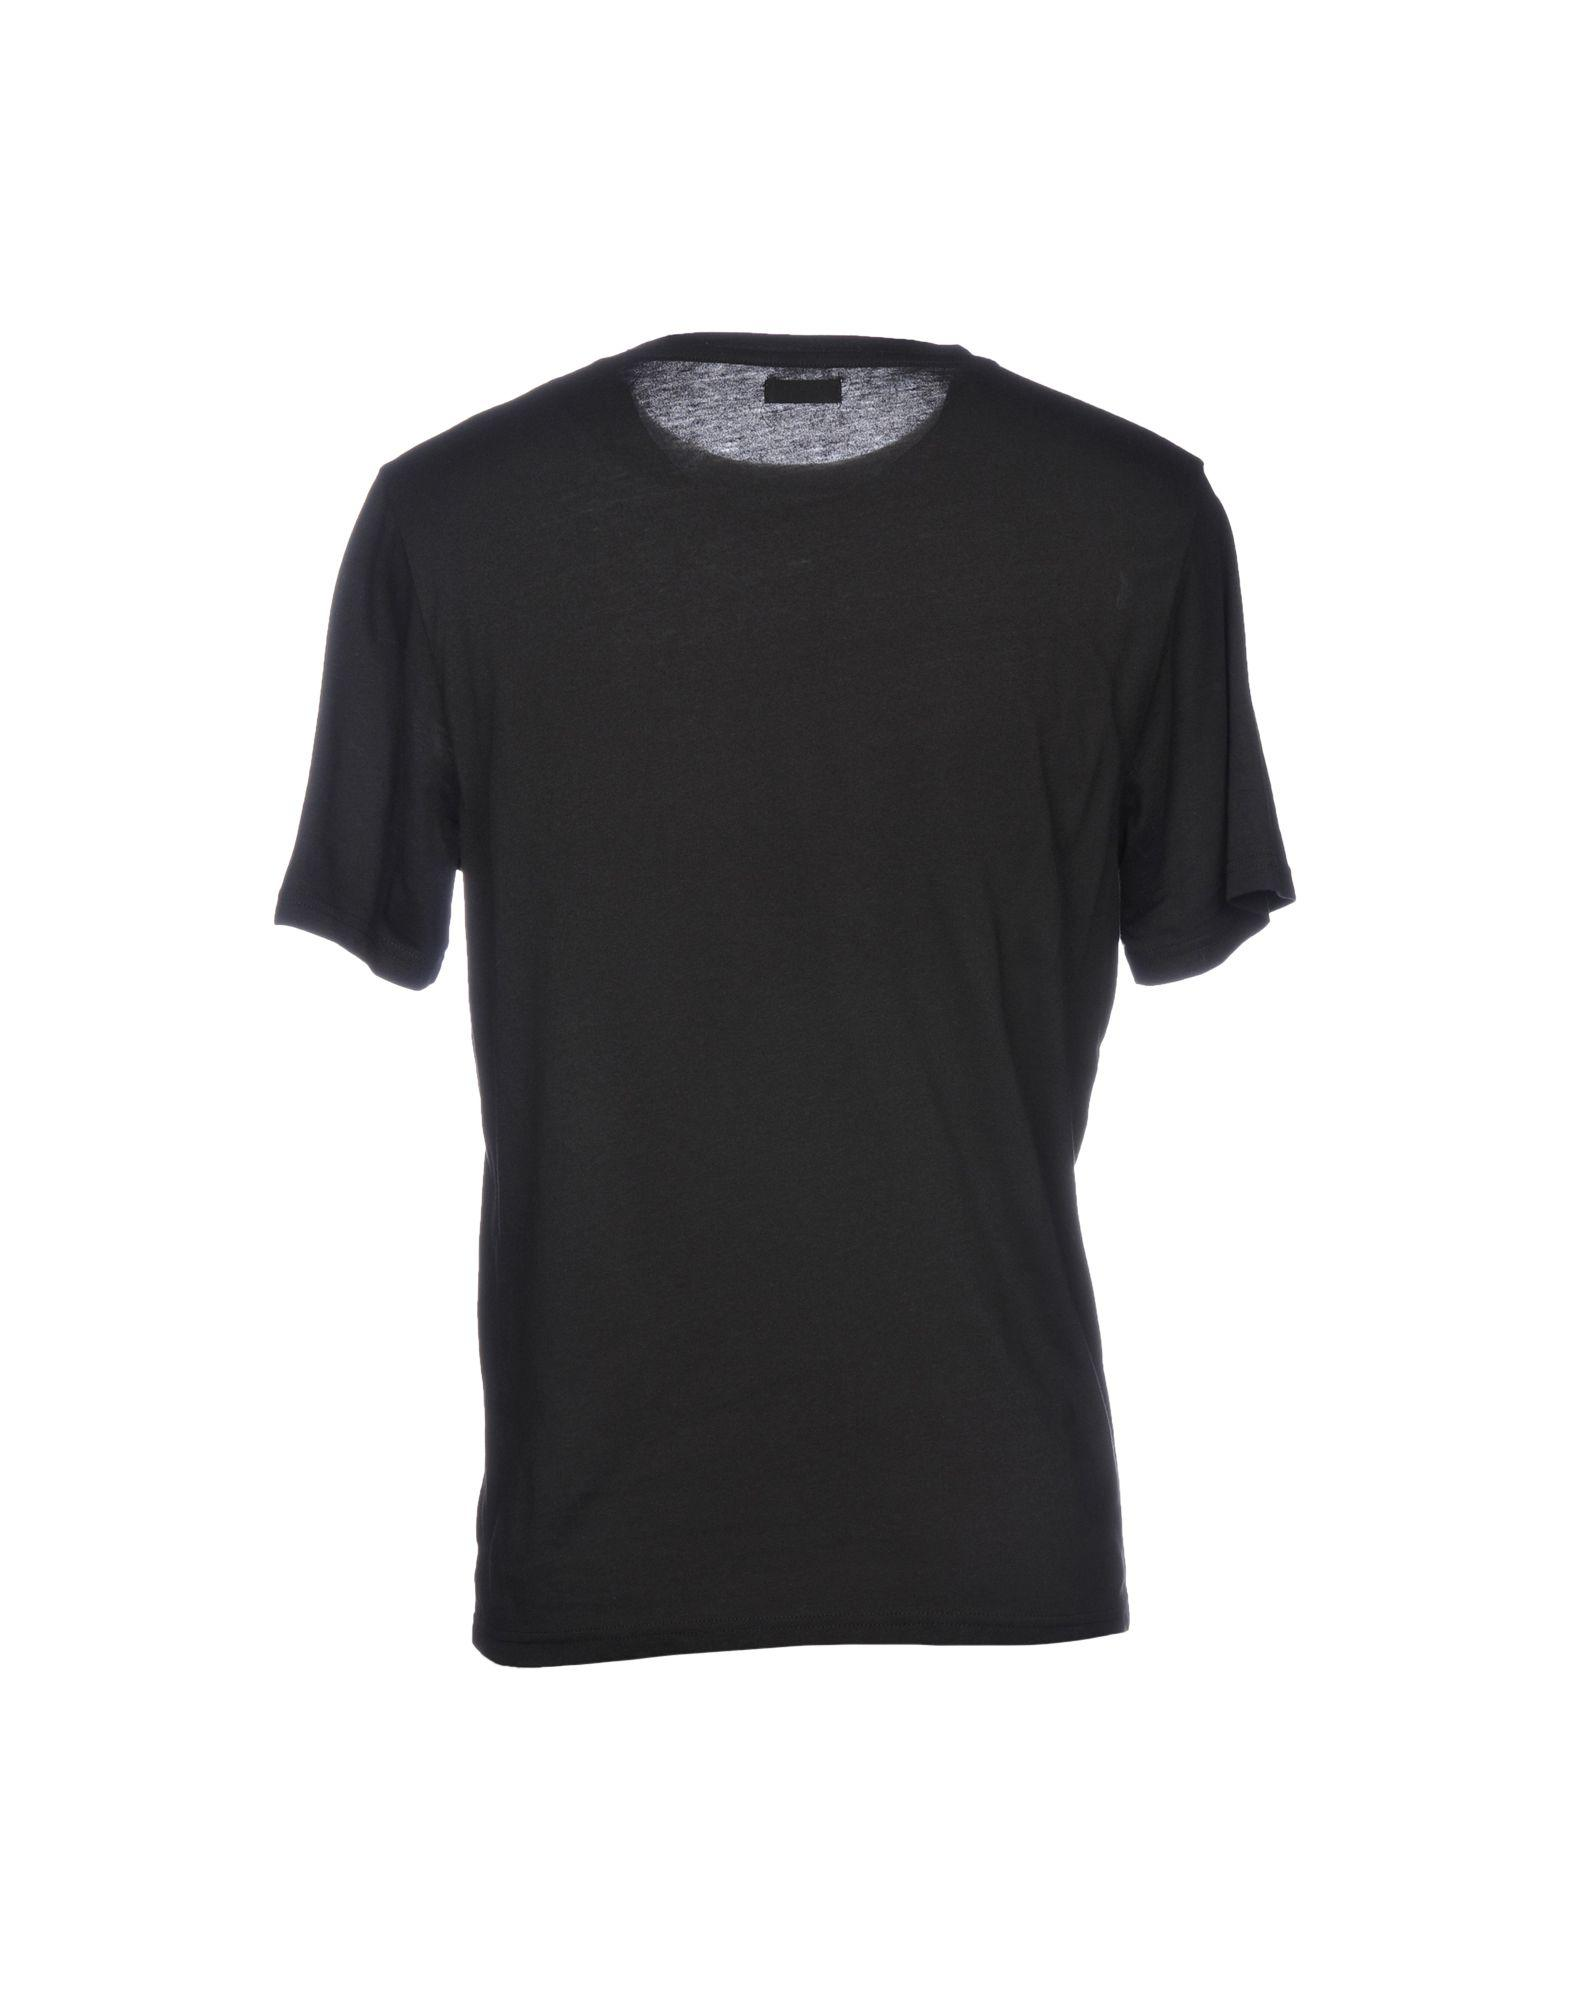 Lyst - Bomboogie T-shirt in Black for Men 57db7a756d